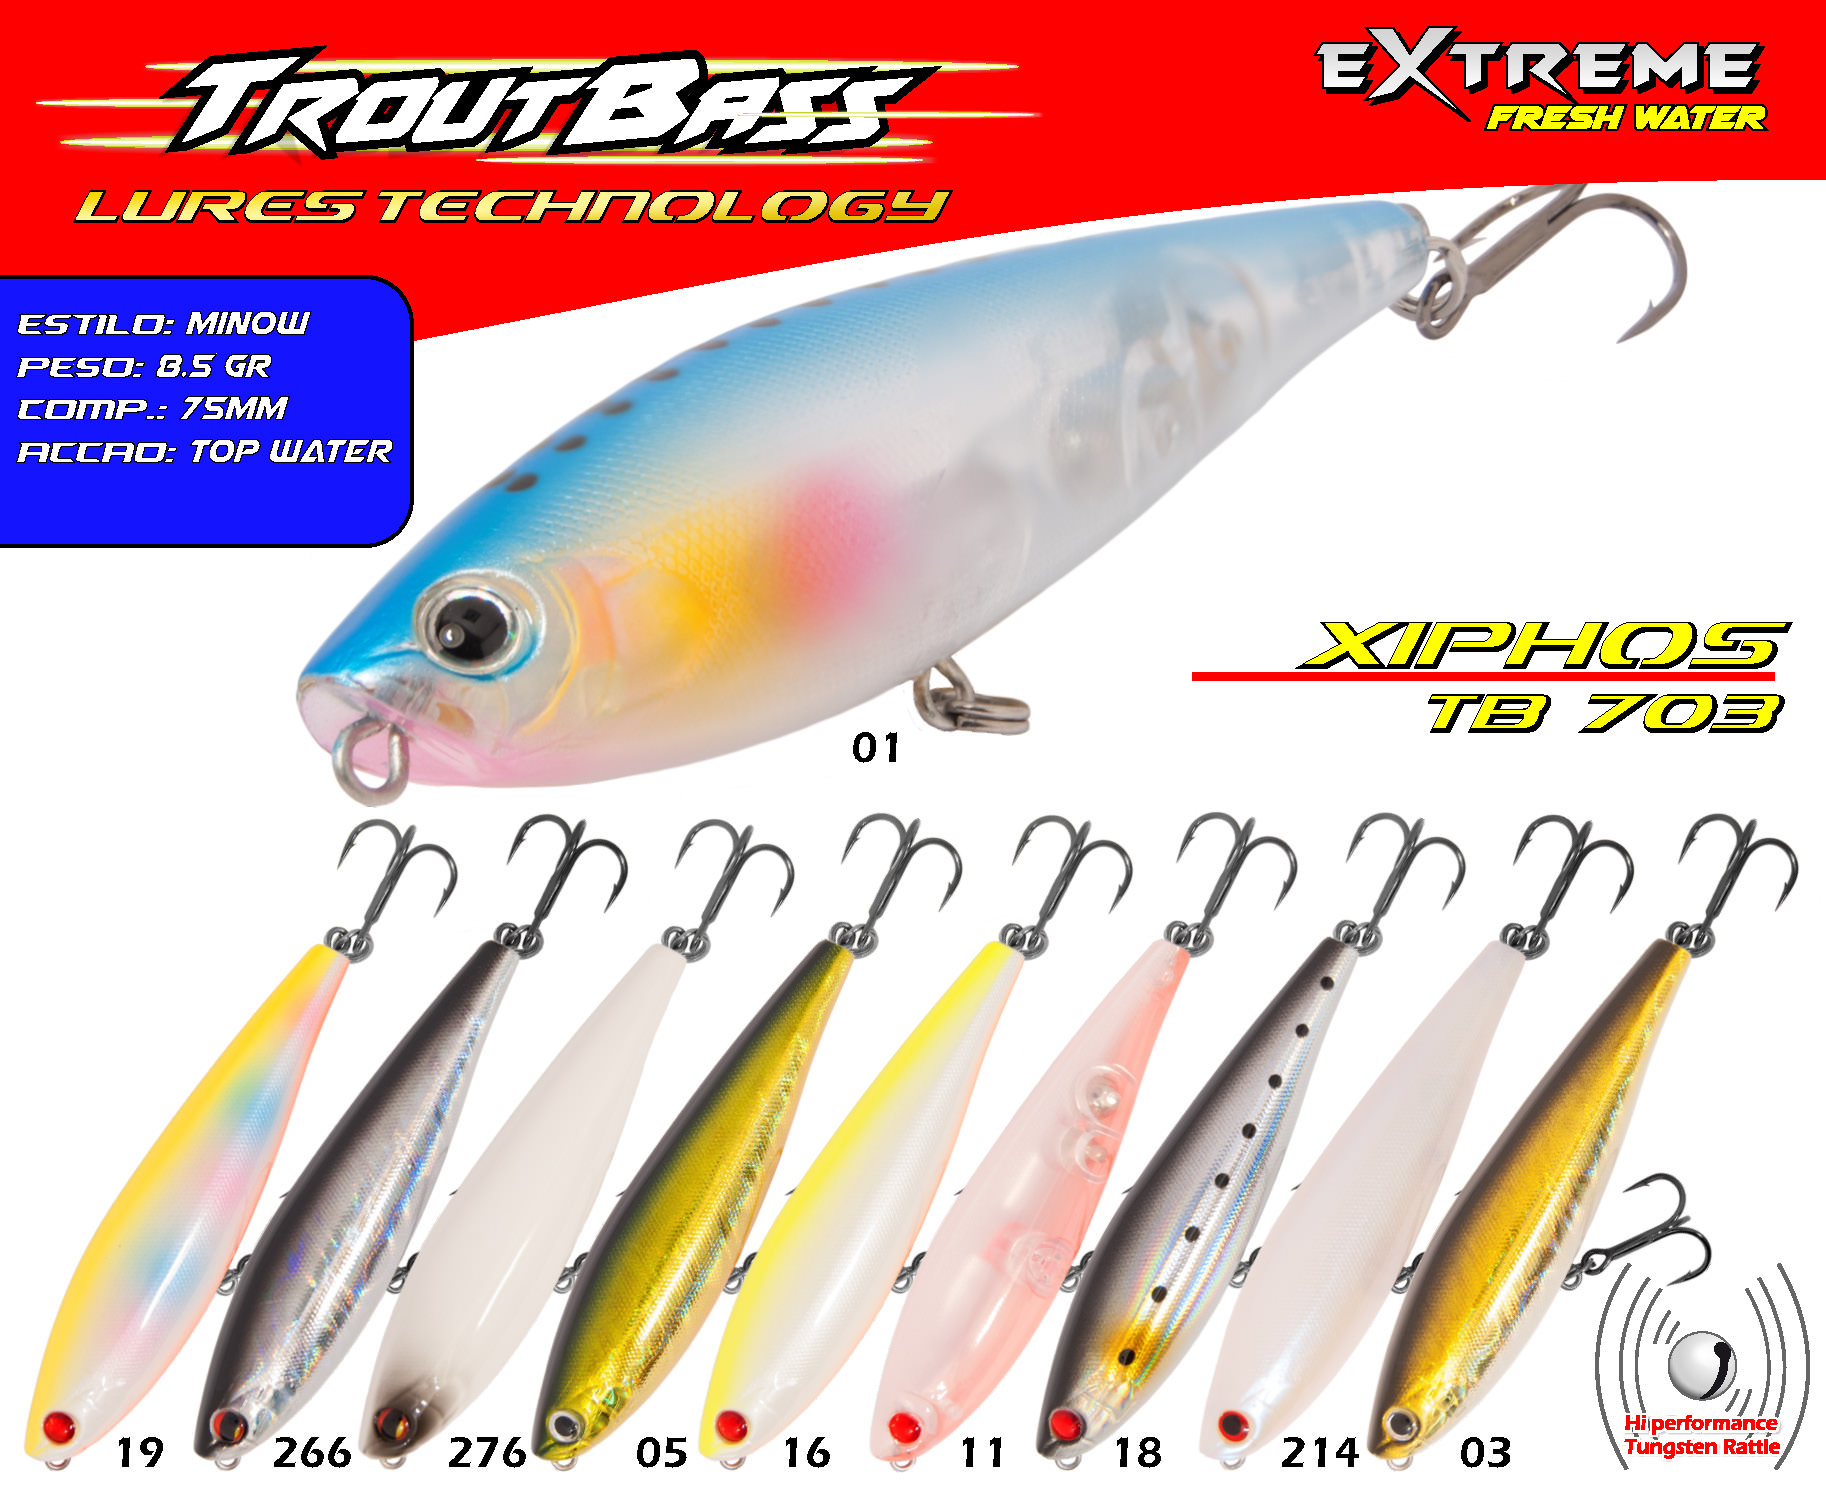 Troutbass Xiphos TB 703